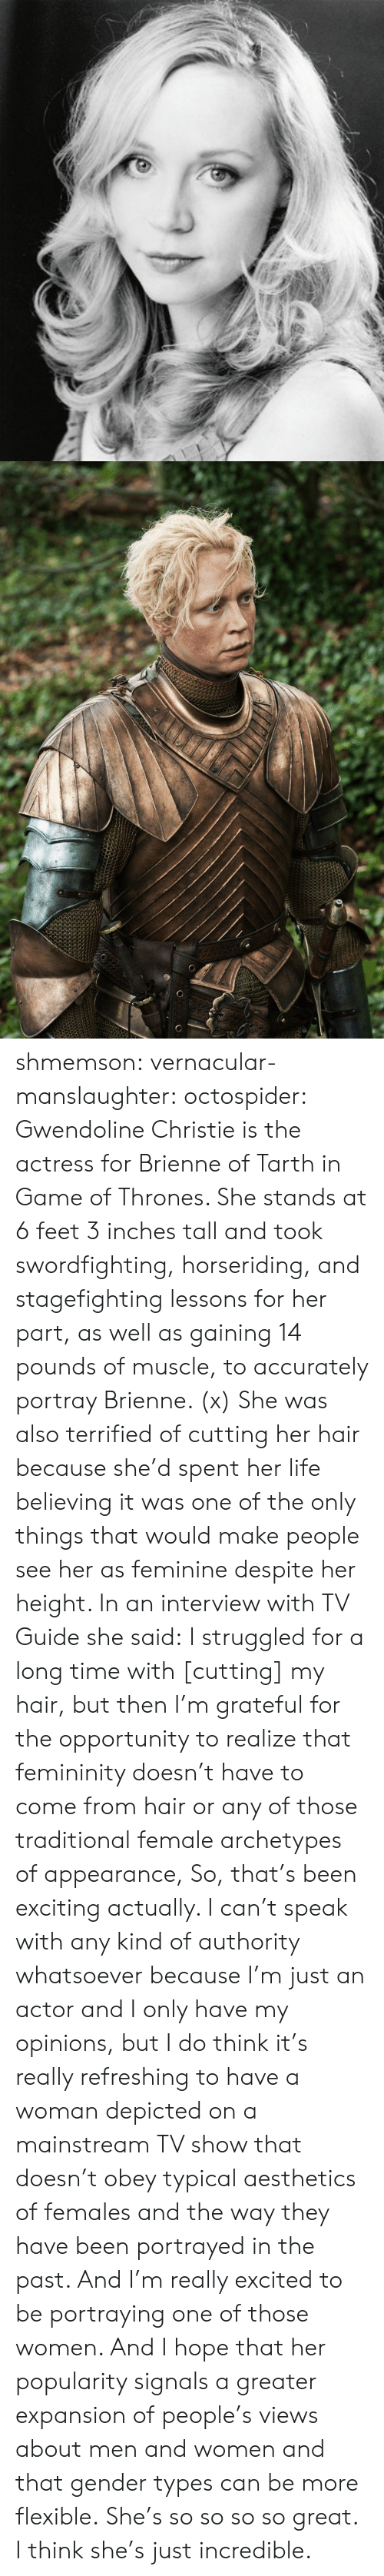 Game of Thrones, Life, and Tumblr: shmemson:  vernacular-manslaughter:  octospider:  Gwendoline Christie is the actress for Brienne of Tarth in Game of Thrones. She stands at 6 feet 3 inches tall and took swordfighting, horseriding, and stagefighting lessons for her part, as well as gaining 14 pounds of muscle, to accurately portray Brienne. (x)  She was also terrified of cutting her hair because she'd spent her life believing it was one of the only things that would make people see her as feminine despite her height. In an interview with TV Guide she said: I struggled for a long time with [cutting] my hair, but then I'm grateful for the opportunity to realize that femininity doesn't have to come from hair or any of those traditional female archetypes of appearance, So, that's been exciting actually. I can't speak with any kind of authority whatsoever because I'm just an actor and I only have my opinions, but I do think it's really refreshing to have a woman depicted on a mainstream TV show that doesn't obey typical aesthetics of females and the way they have been portrayed in the past. And I'm really excited to be portraying one of those women. And I hope that her popularity signals a greater expansion of people's views about men and women and that gender types can be more flexible.  She's so so so so great. I think she's just incredible.